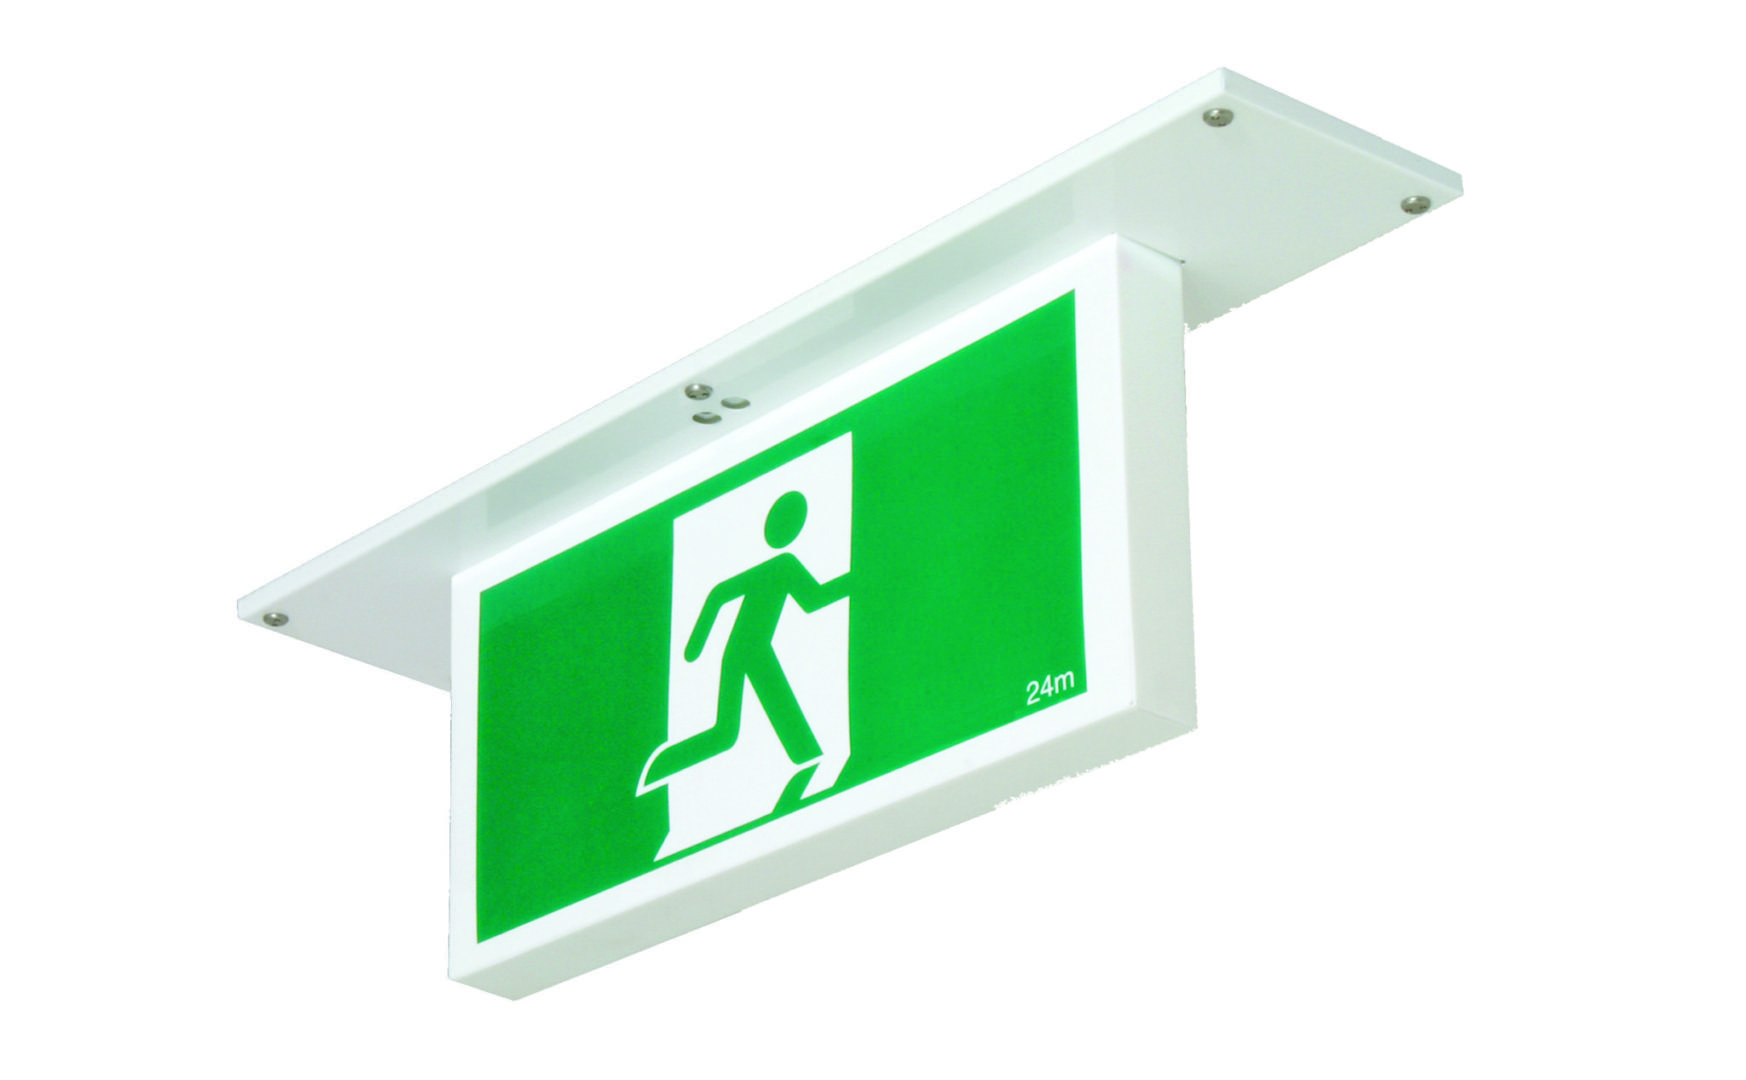 Legrand Reveals the Ultimate Tamper-resistant Exit Signs